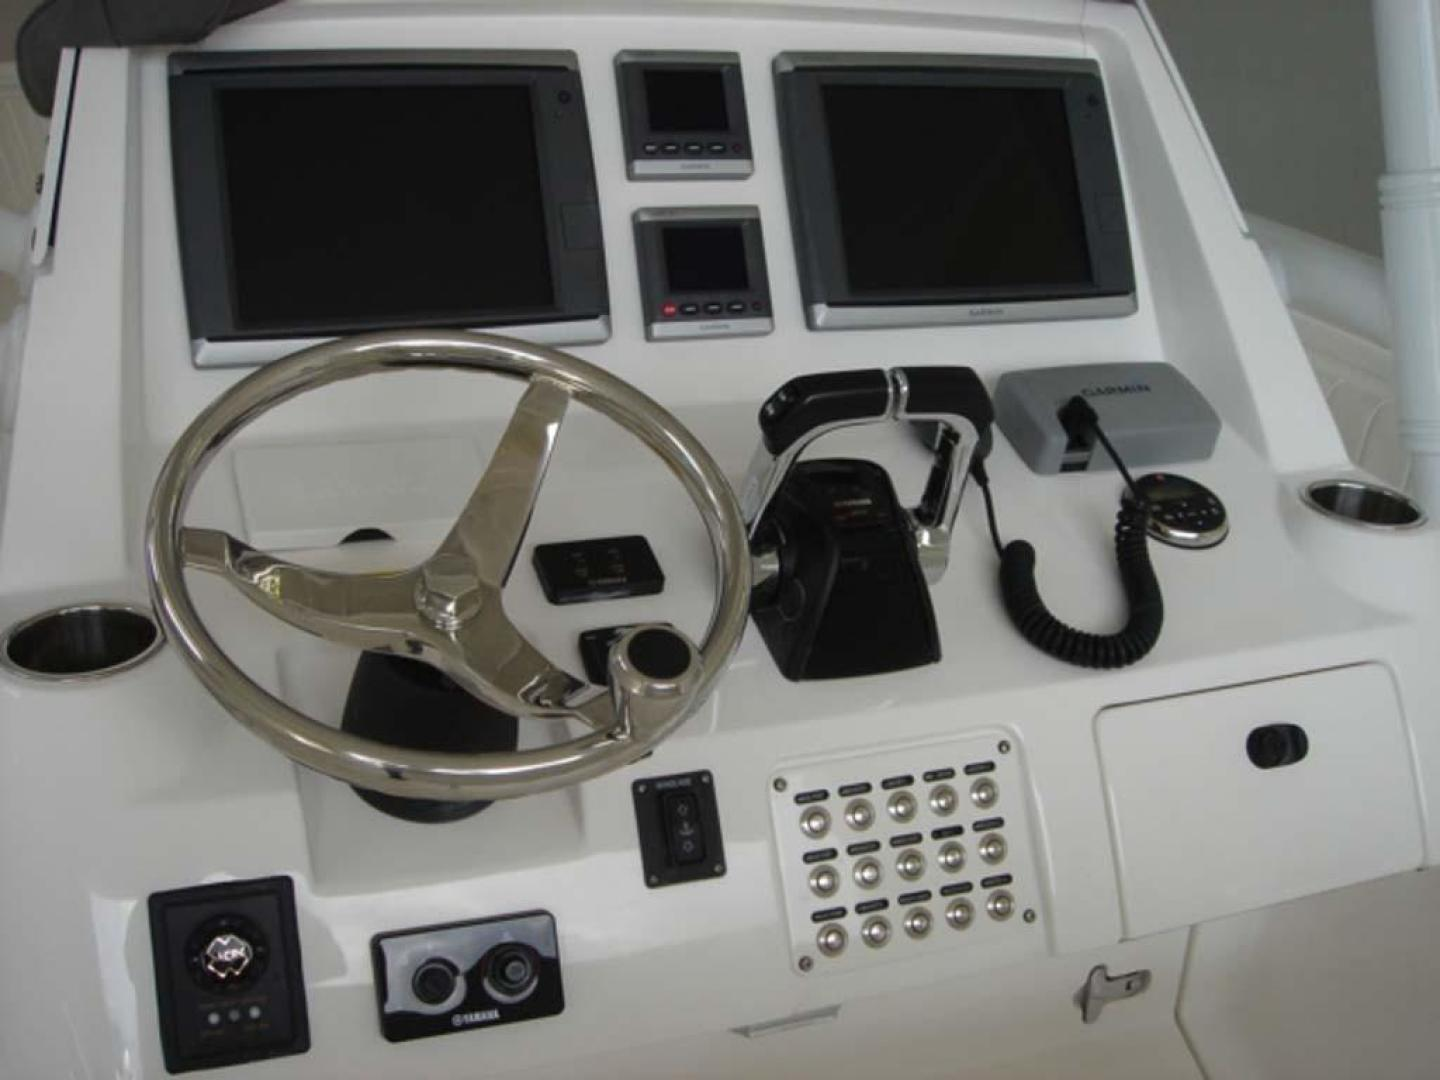 Intrepid-327 Center Console 2014-Deep Ship Palm Beach Gardens-Florida-United States-924020 | Thumbnail